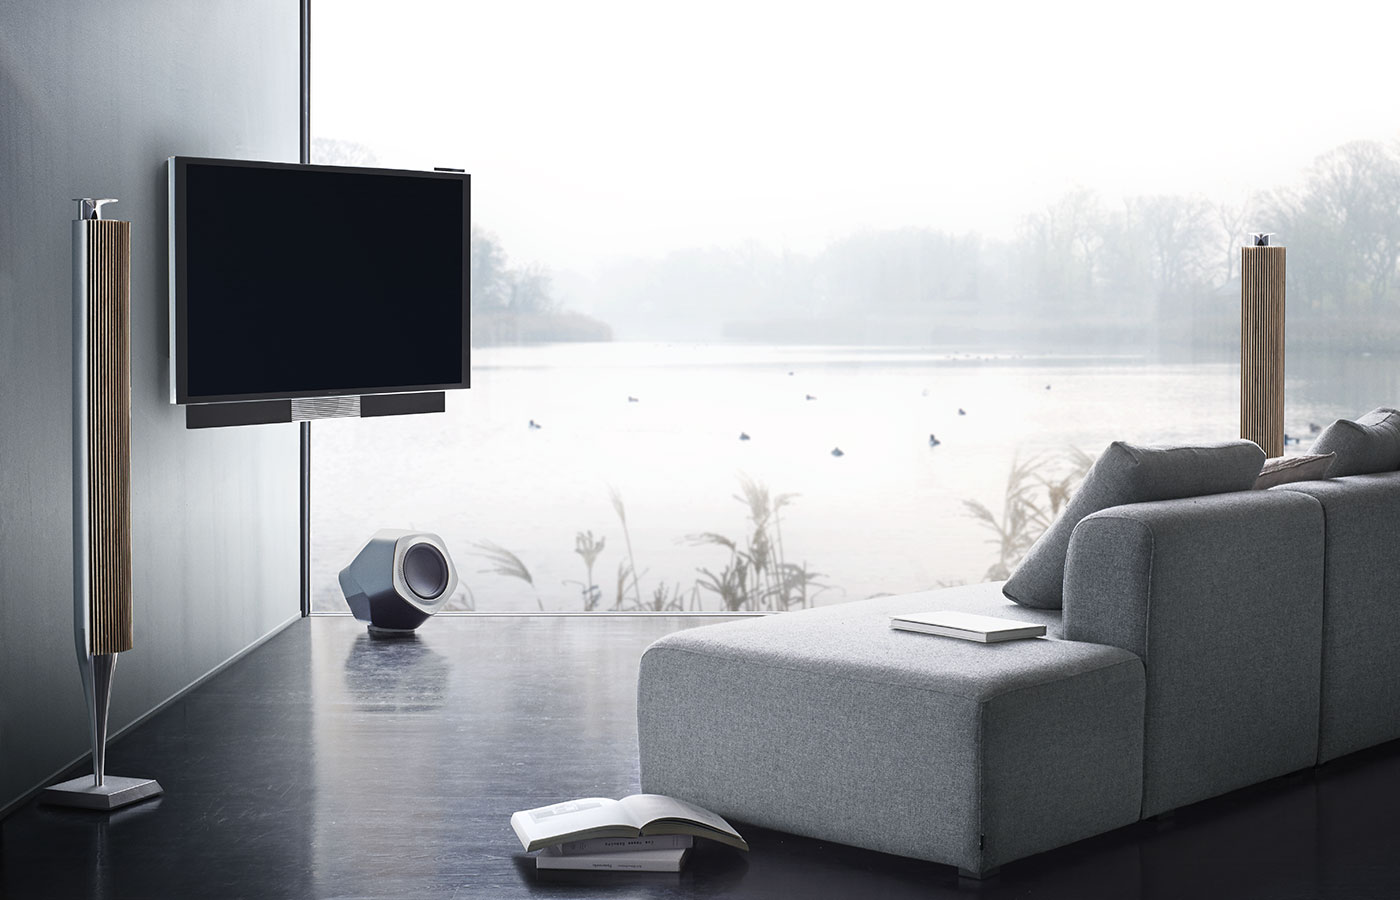 bang-olufsen-beovision-avant-tv-high-quality-uhd-4k-3-channel_stereo.jpg